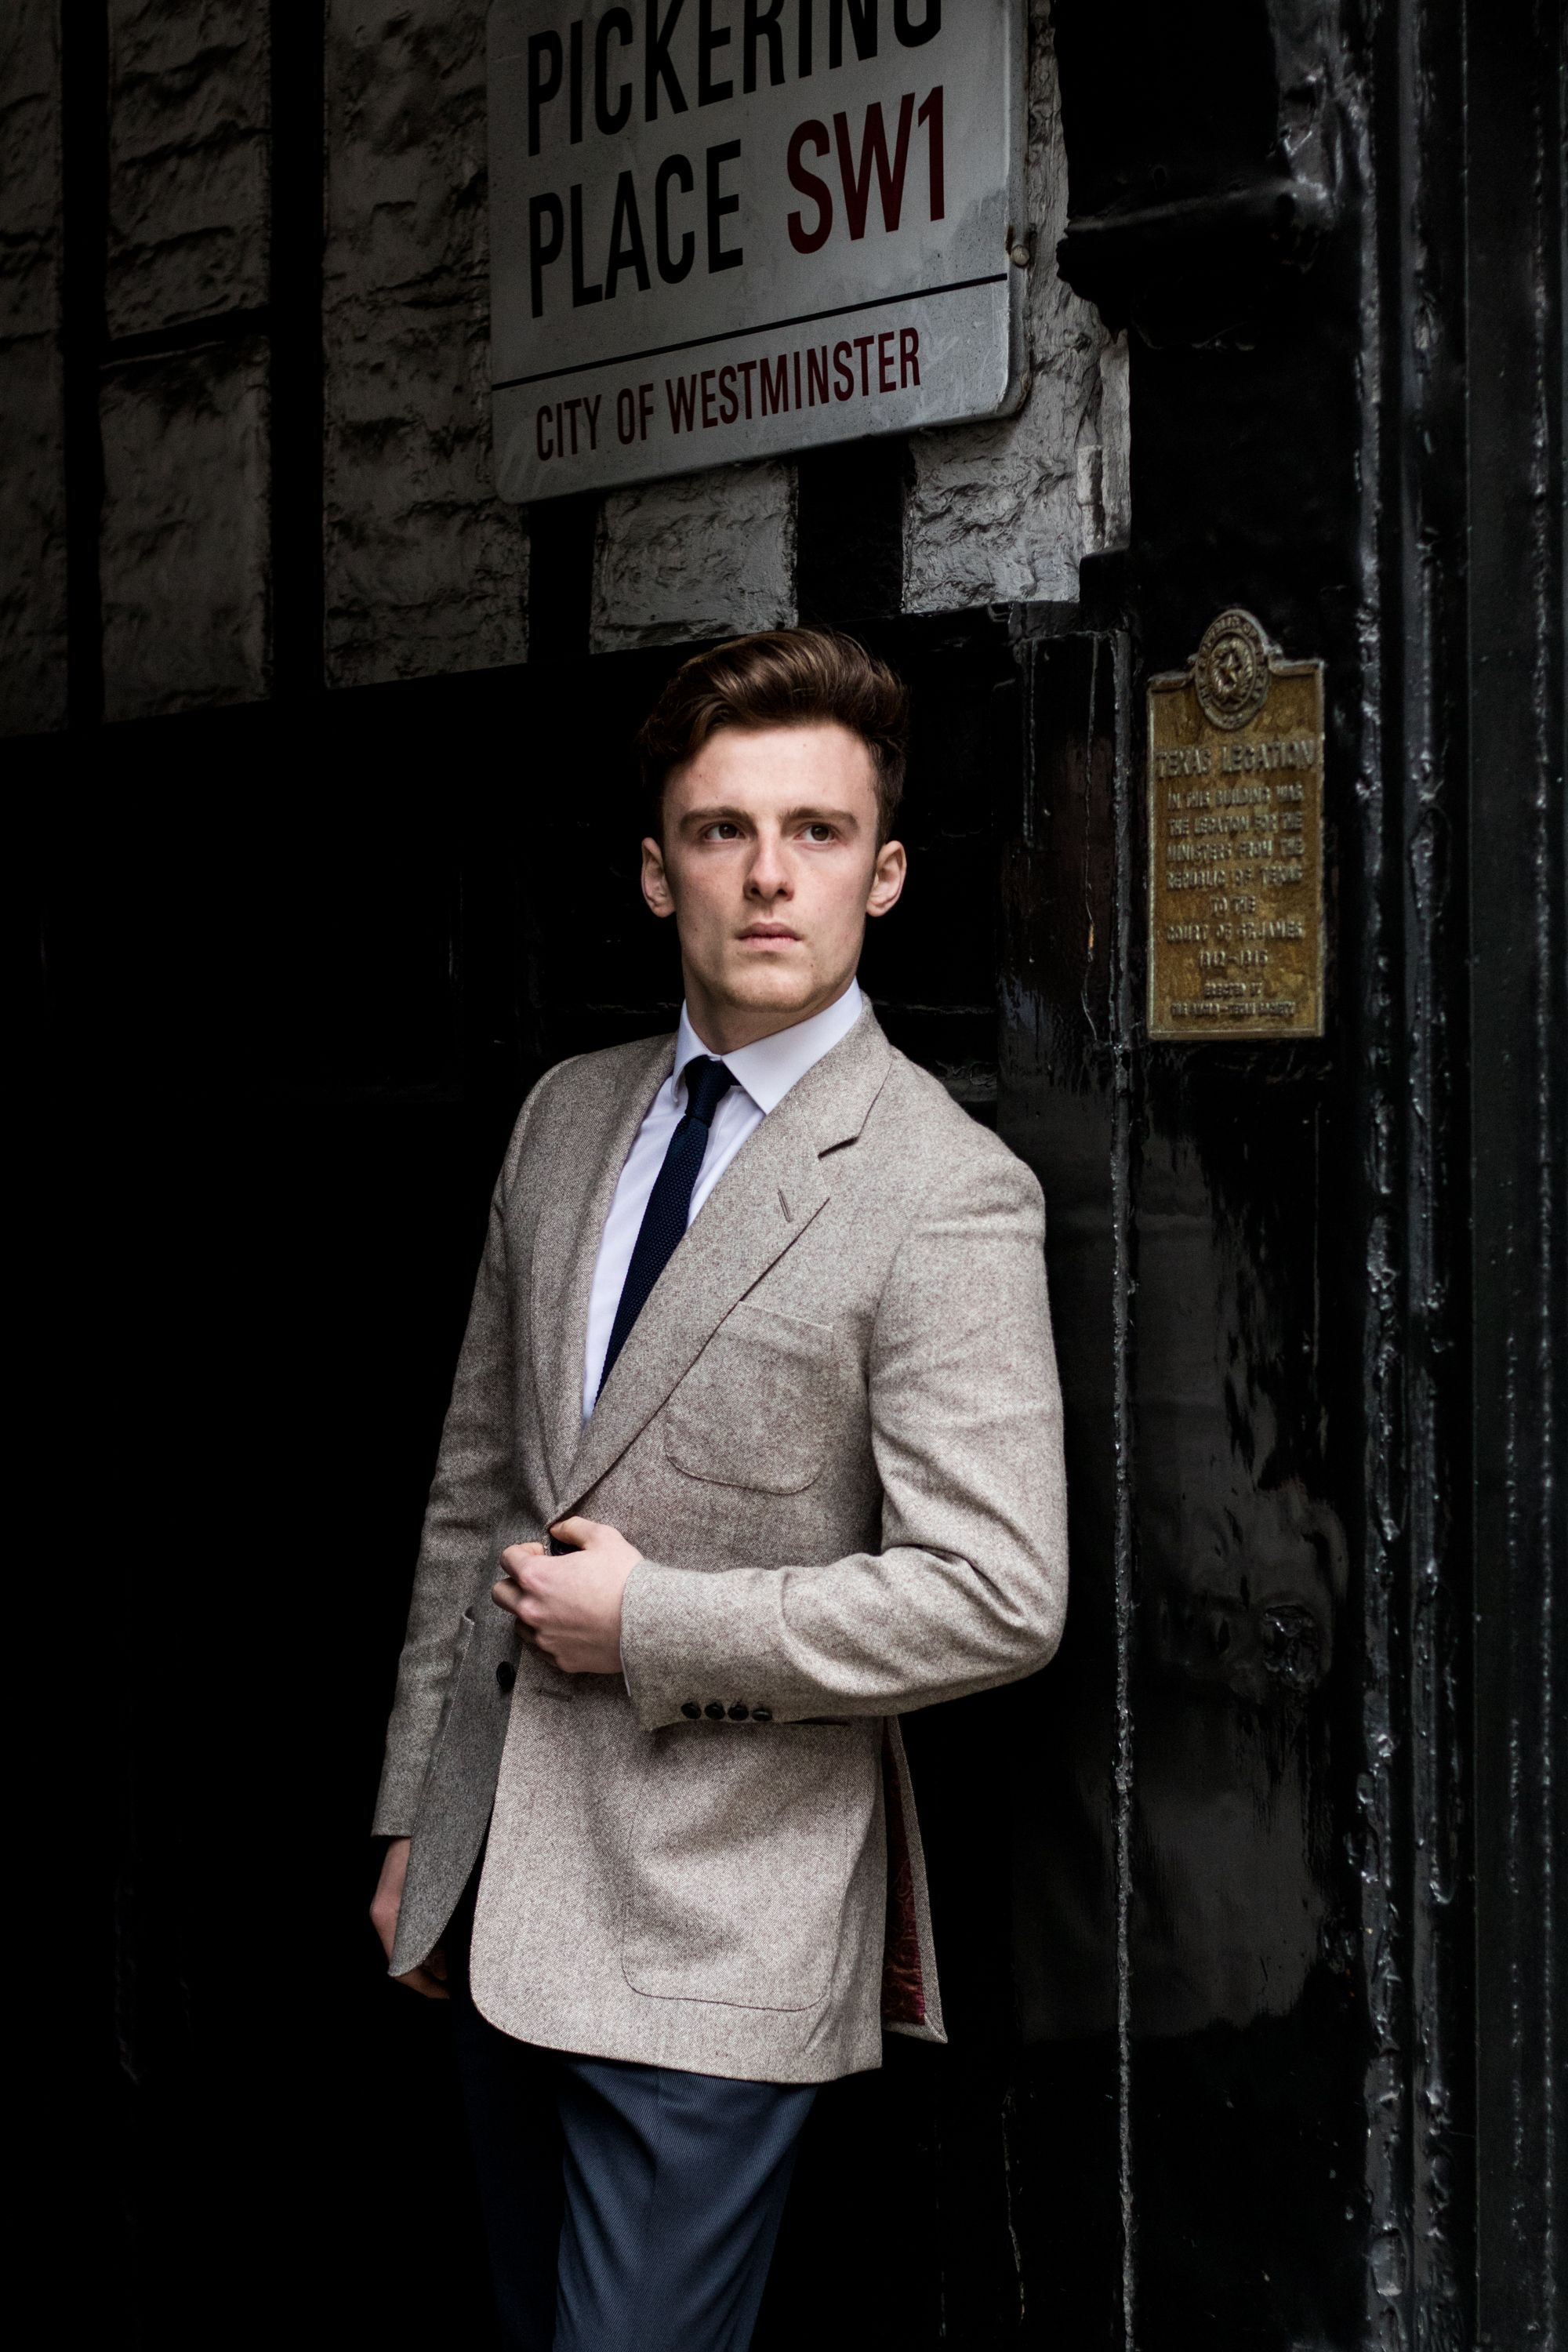 83bc30f69c4 Bespoke jacket by Cad & The Dandy. Buy bespoke suits, tailored shirts,  separates and men's accessories from Cad & The Dandy in London, New York  and ...